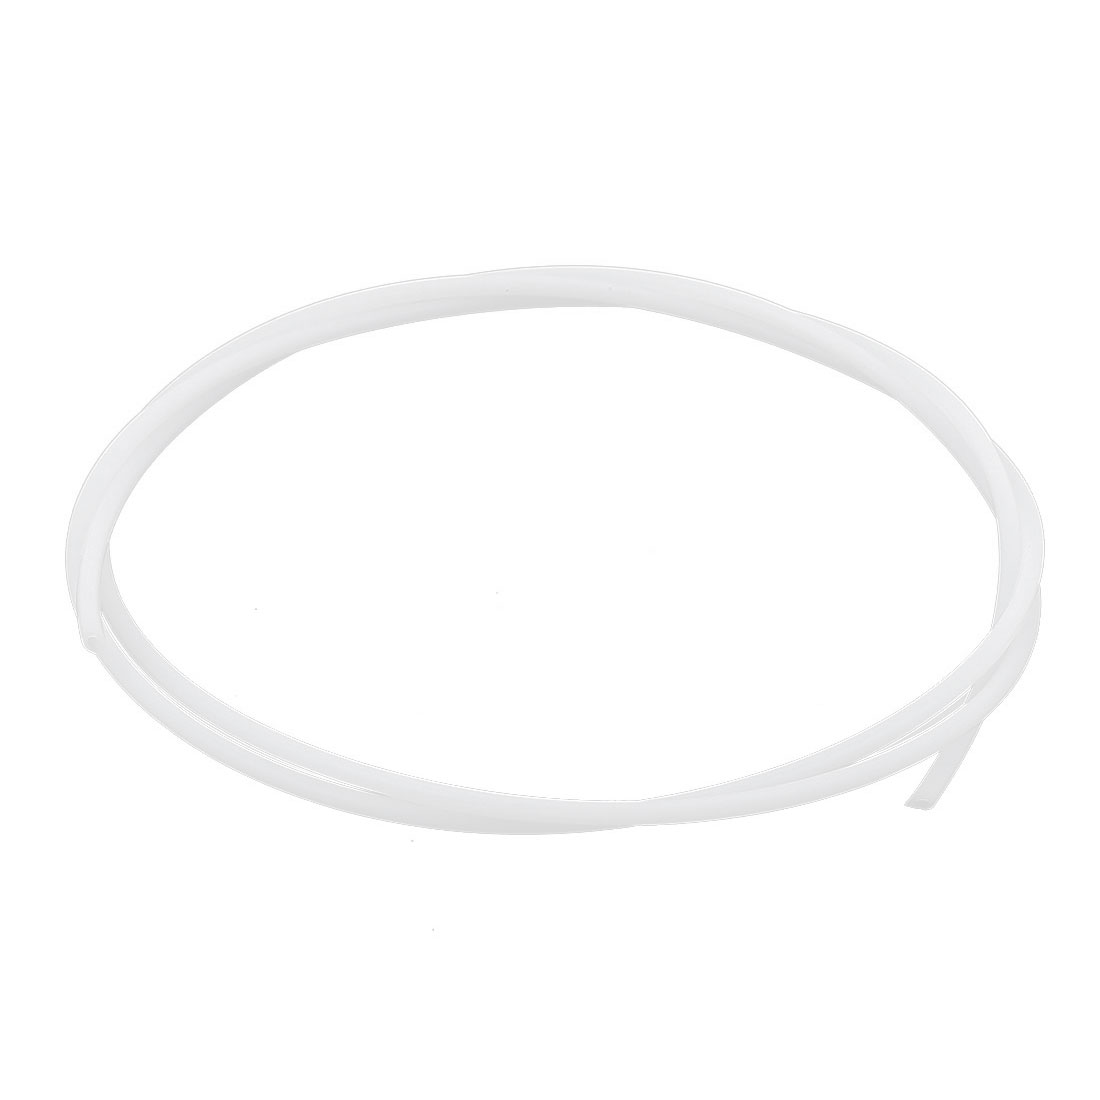 3mm ID 4mm OD PTFE Tubing Tube Pipe 1M 3.3ft for 3D Printer RepRap